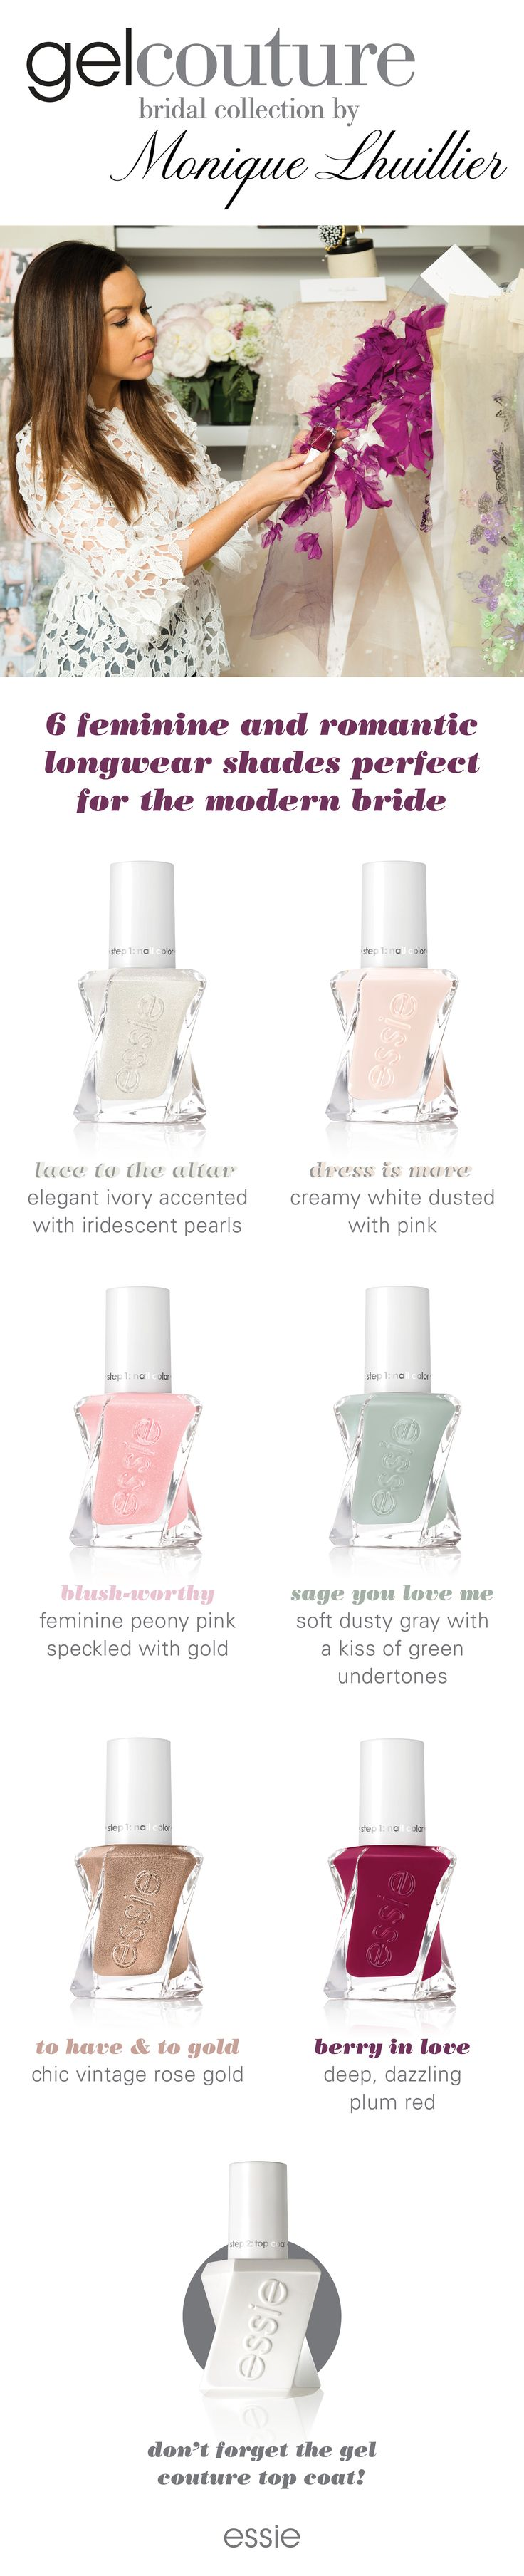 No wedding day is complete without the new bridal collection by Monique Lhuillier for gel couture by essie nail polish. Meet the 6 new shades: 'lace to the altar' an elegant ivory, 'dress is more' a creamy white dusted with pink polish, 'blush-worthy' a feminine peony pink speckled with gold, 'sage you love me' a dusty gray with a kiss of green undertones, 'to have & to gold' a chic vintage rose gold, 'berry in love' a deep plum red. Don't forget to top it off with gel couture top coat.